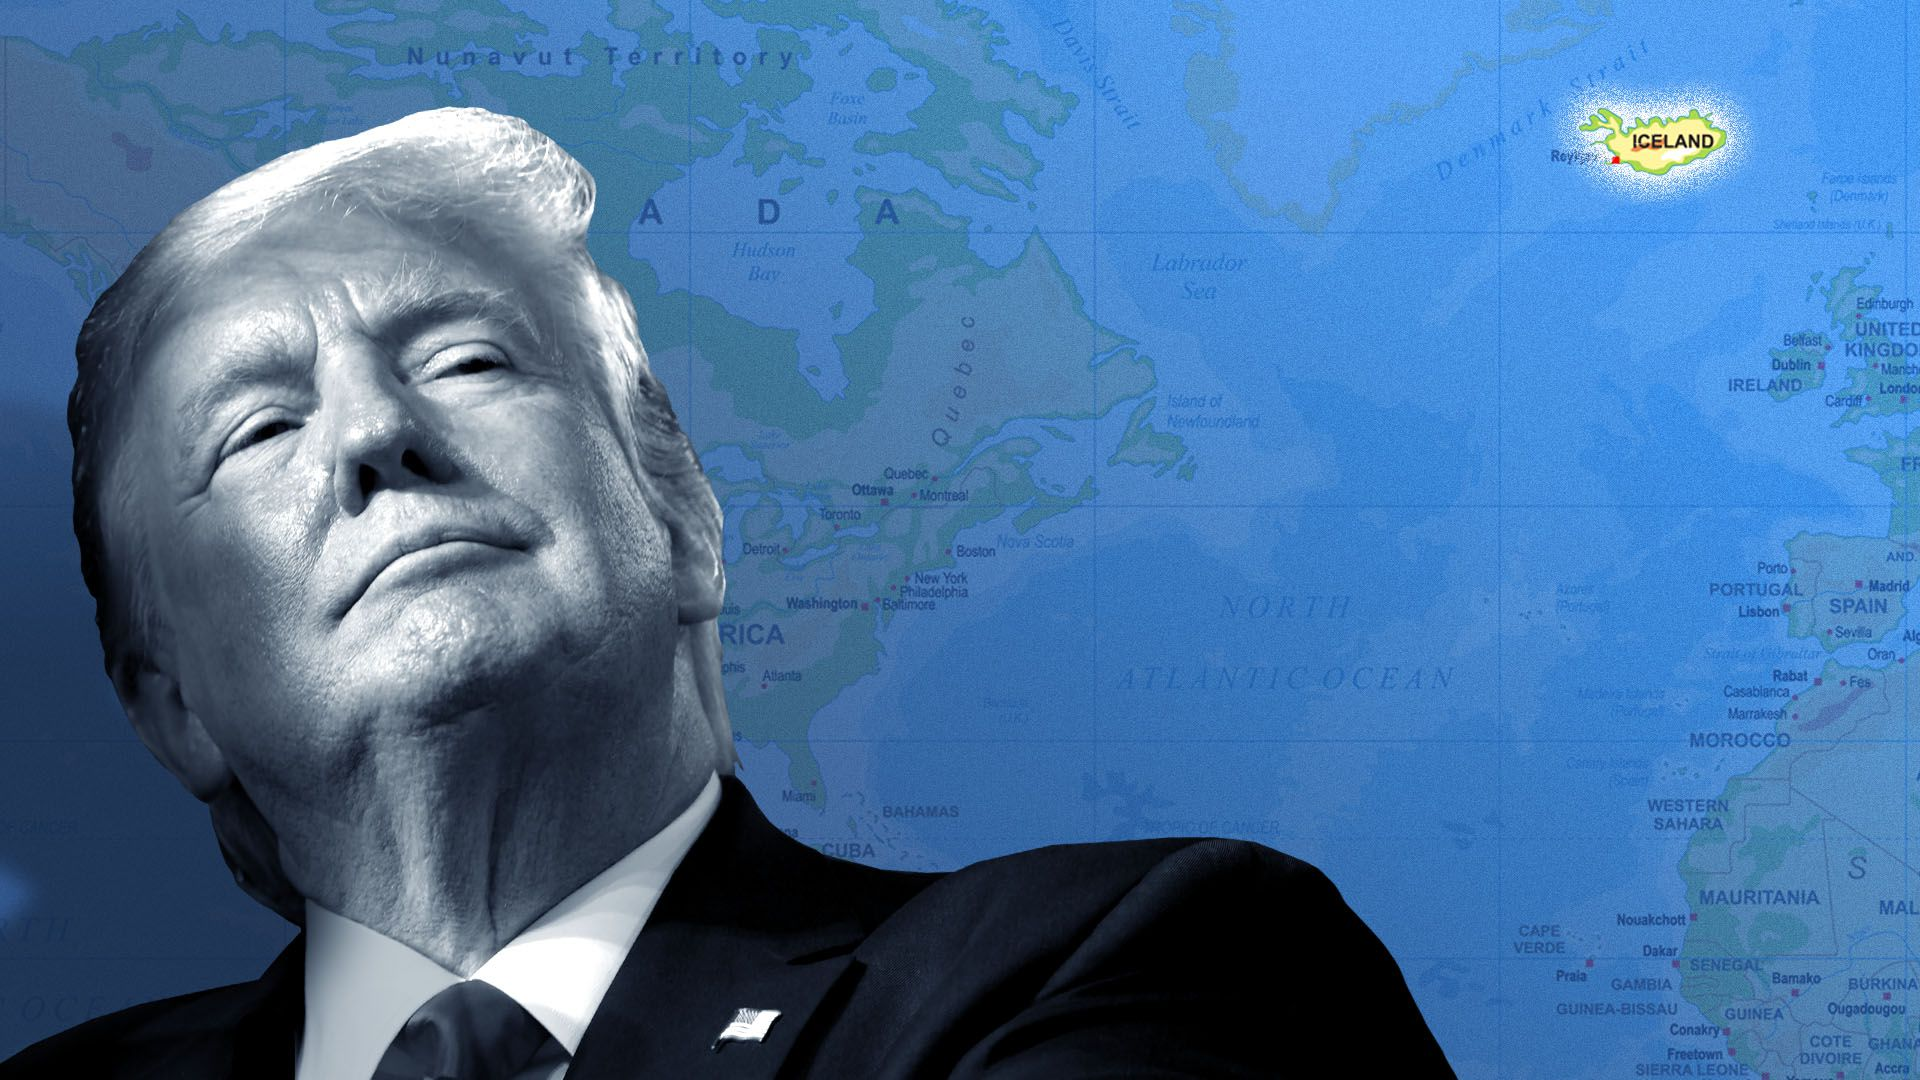 Illustration of President Trump looking at a world map with Iceland highlighted